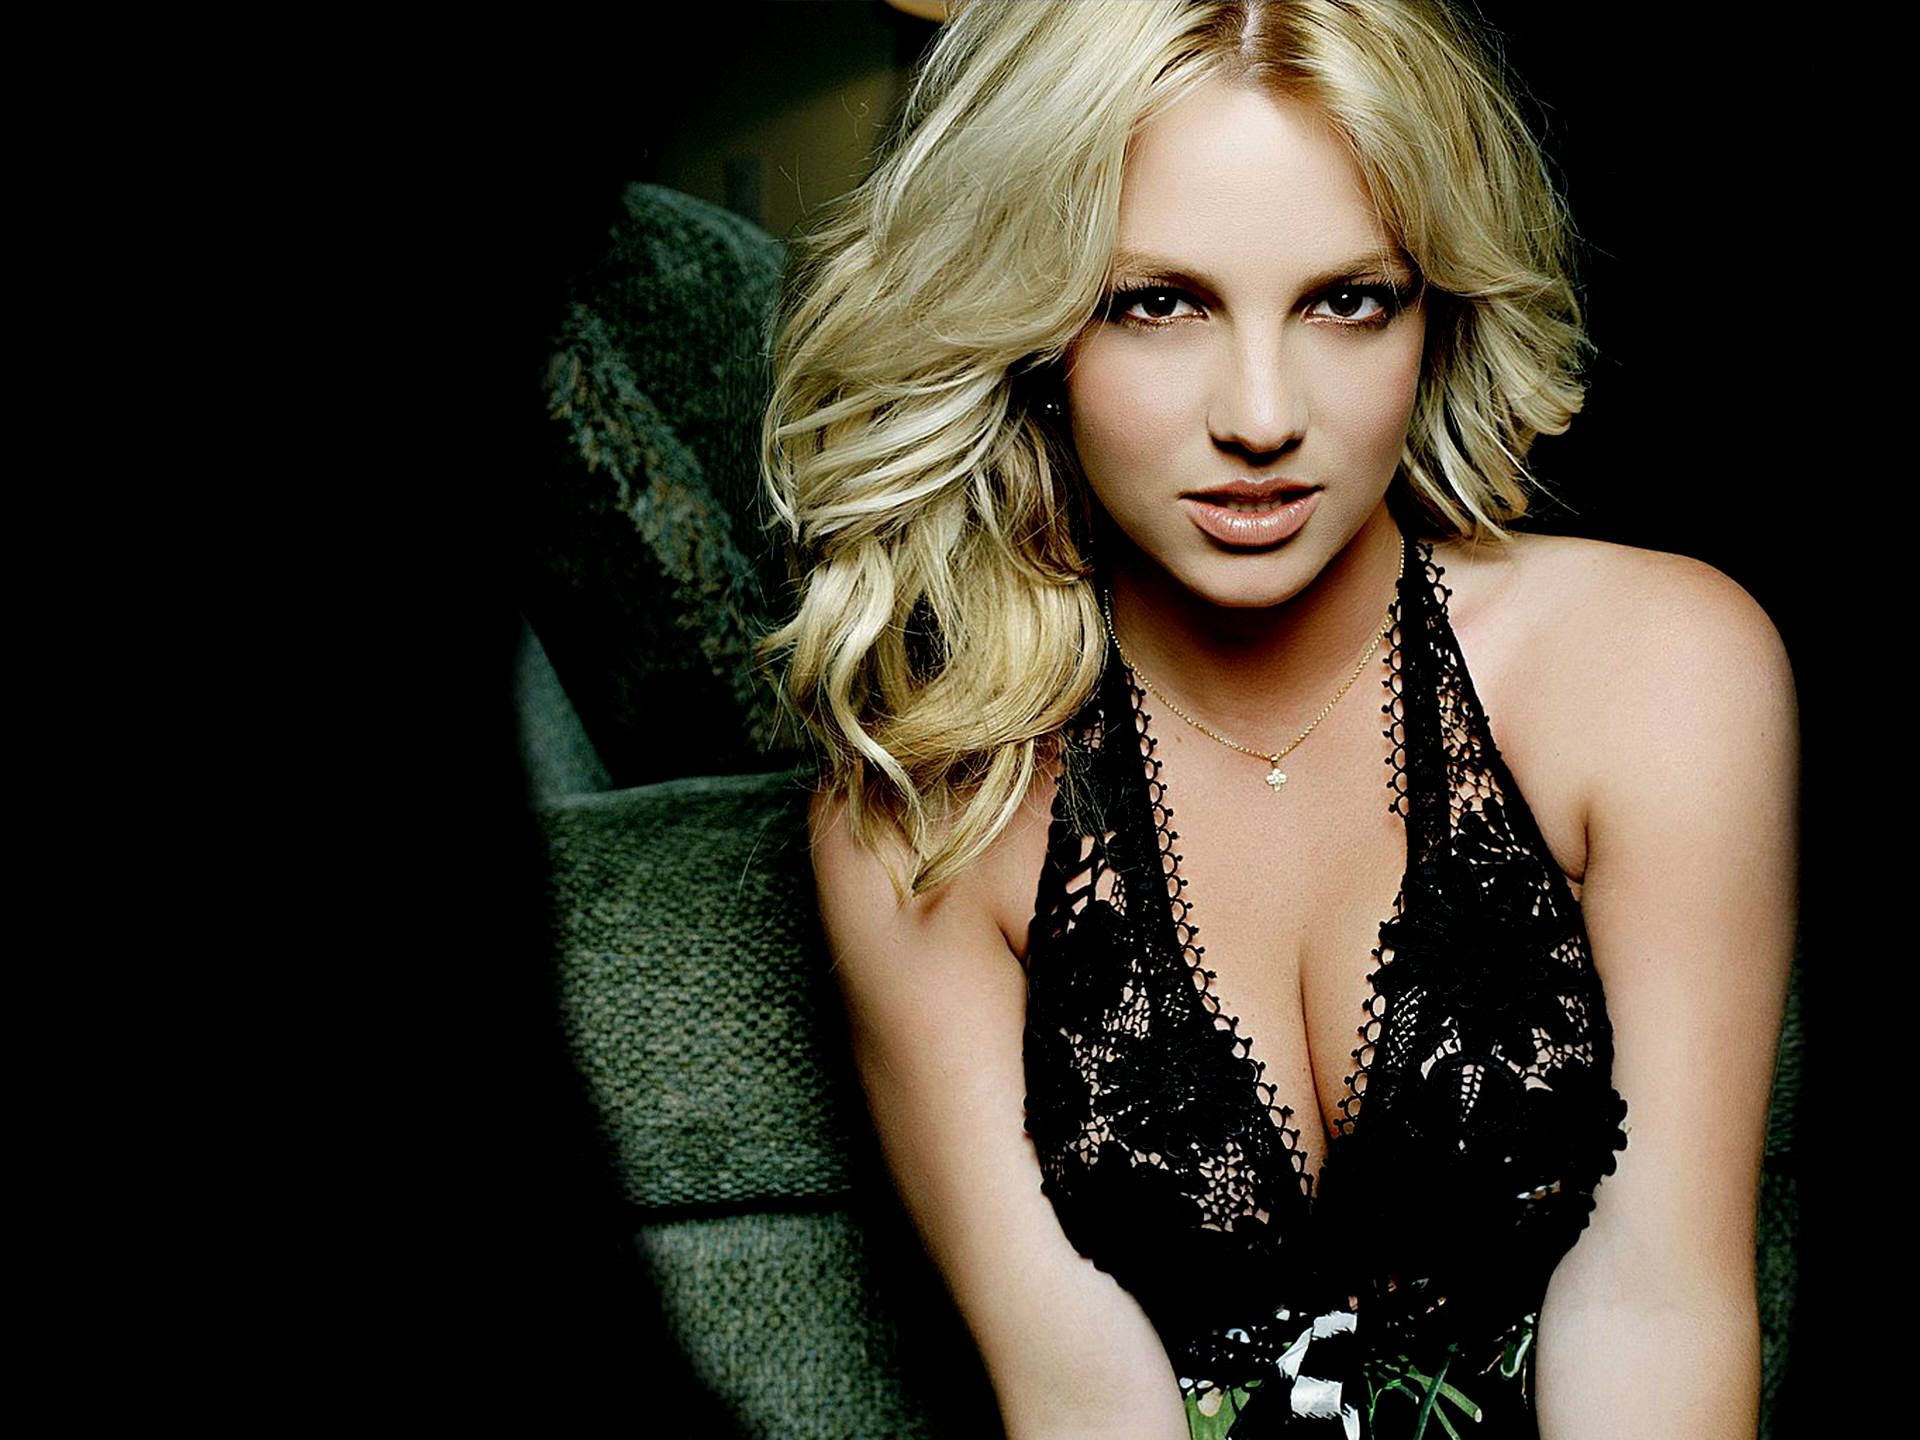 britney spears beautiful - photo #15